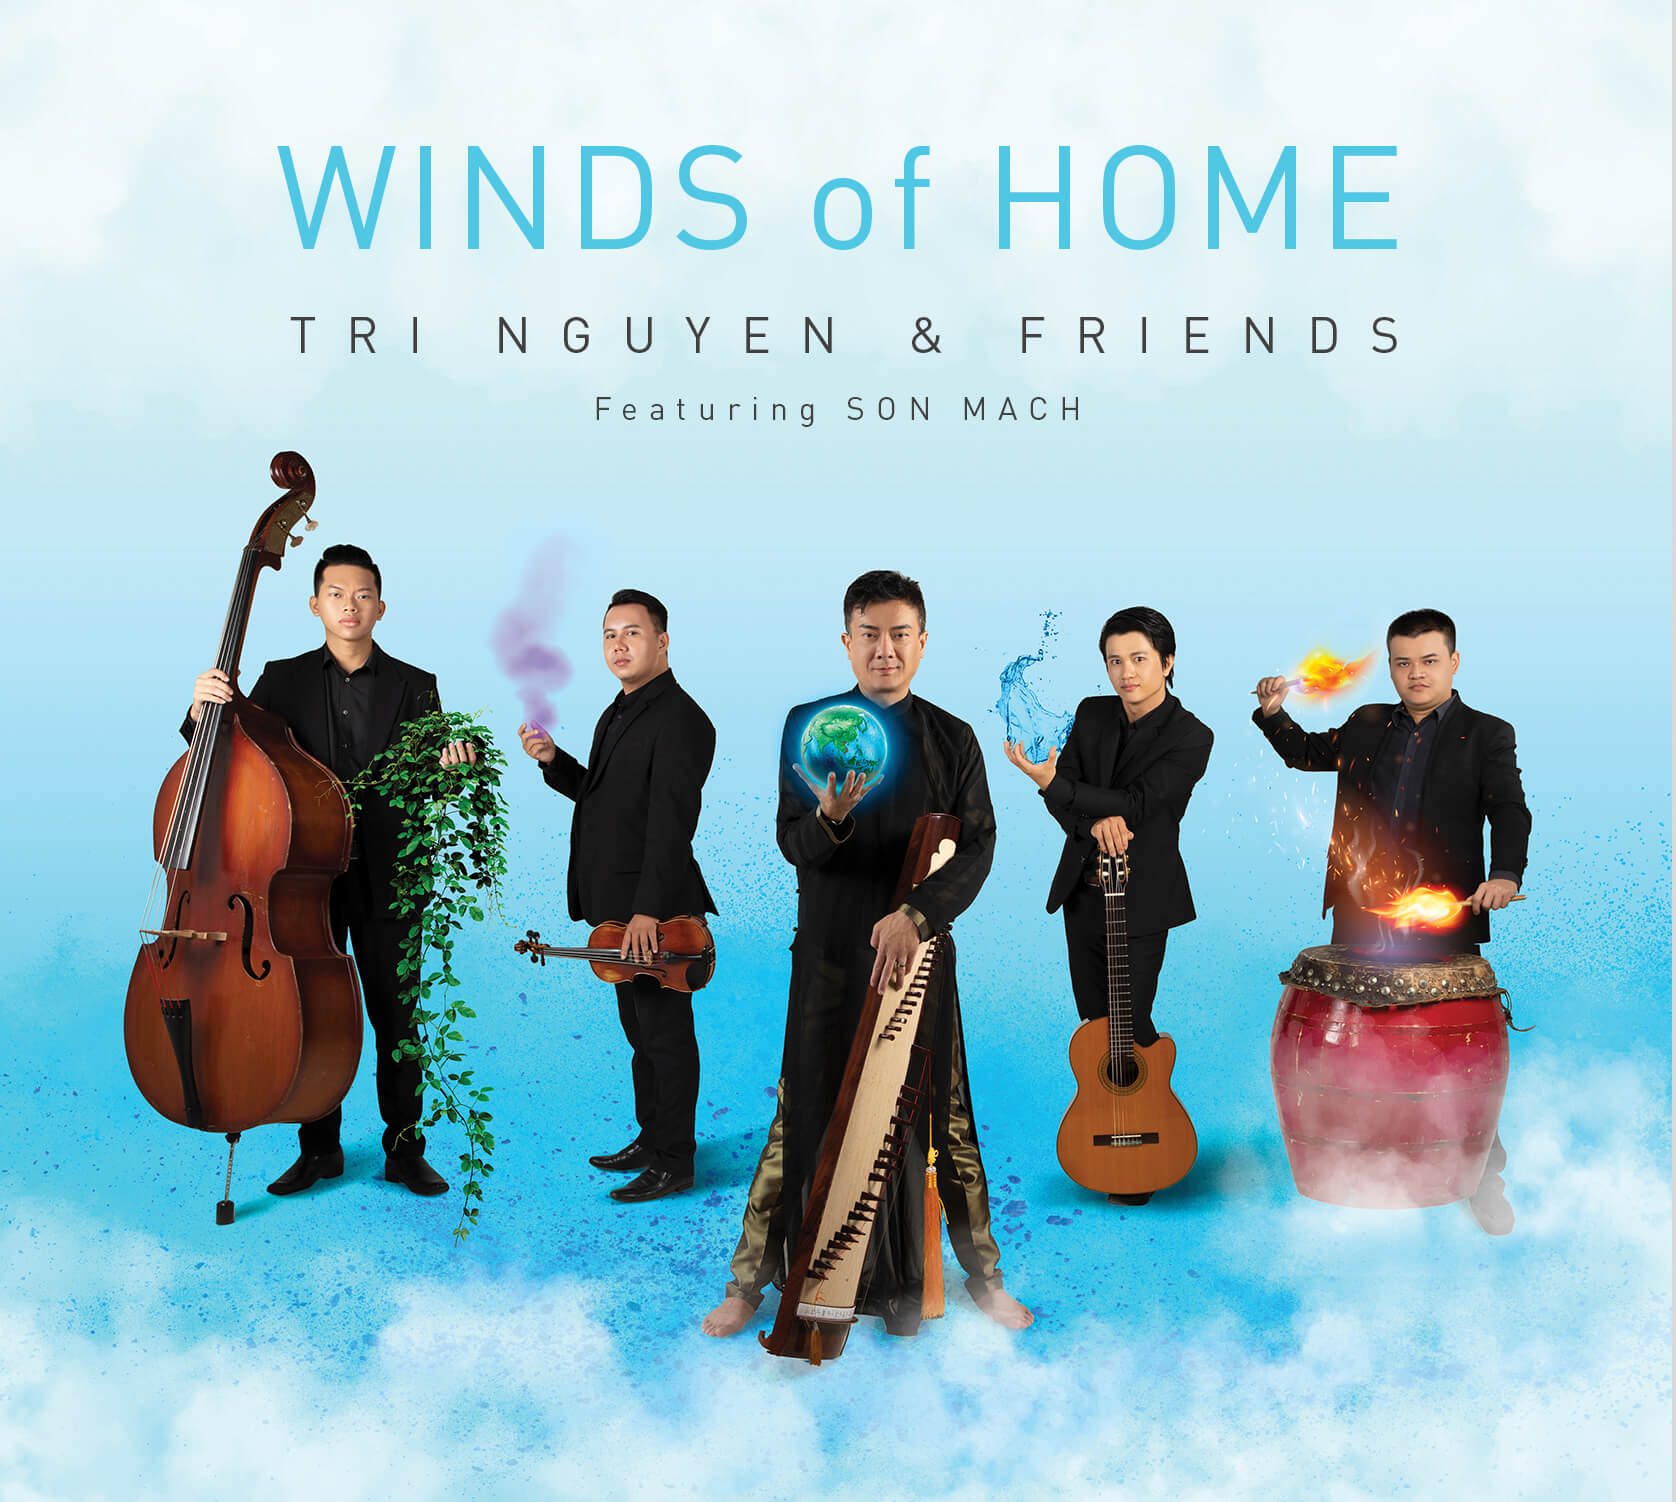 Booklet Winds of Home